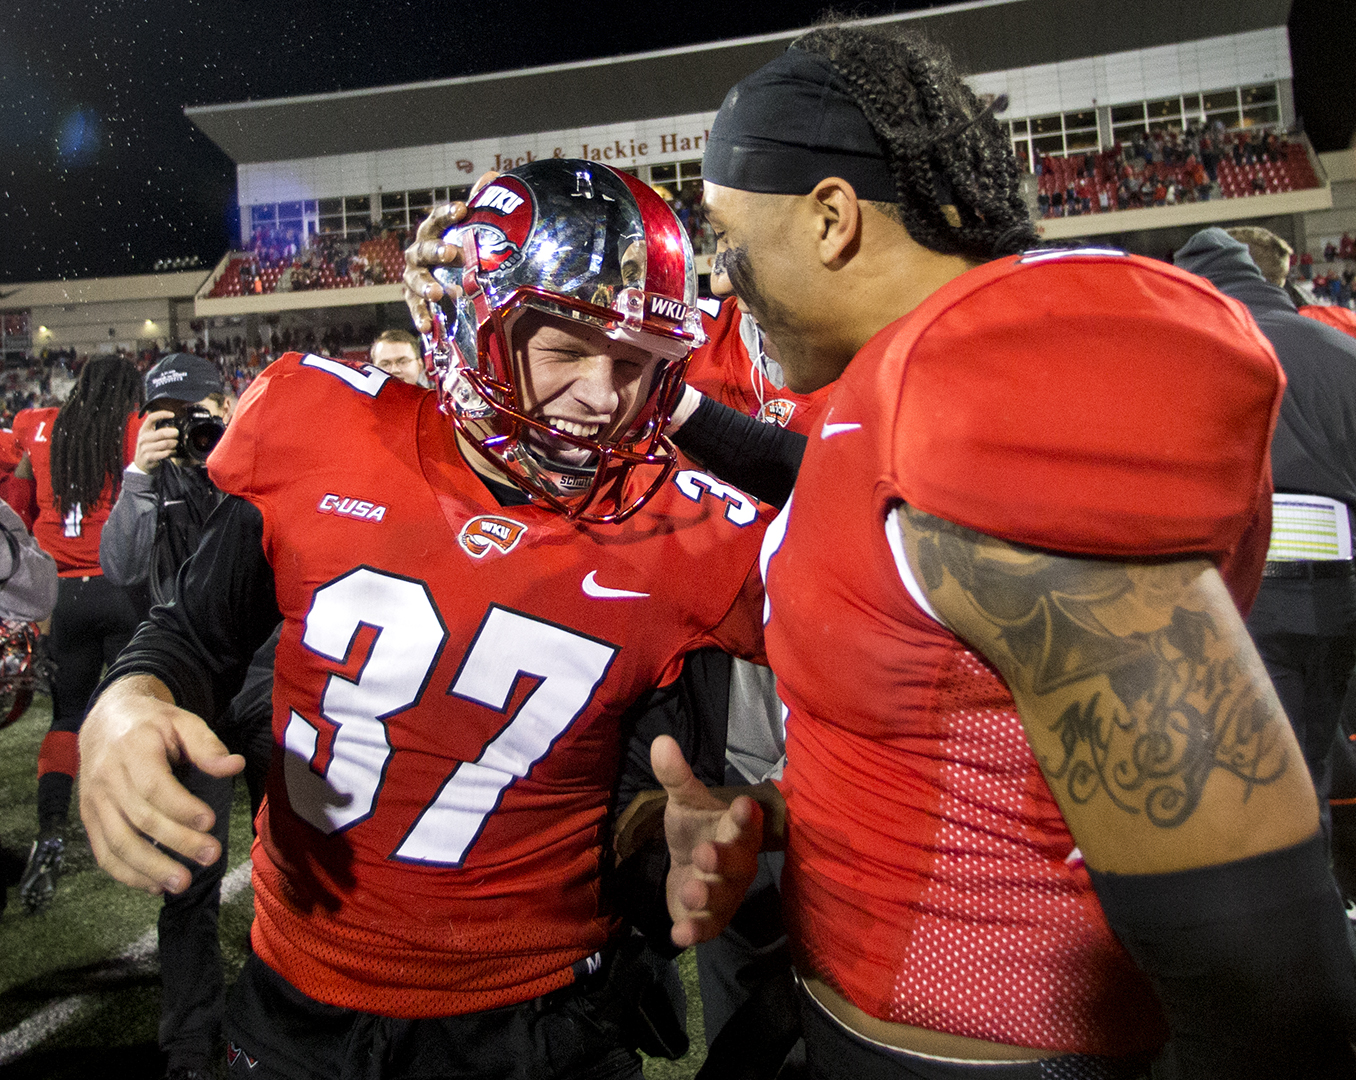 WKU kicker Ryan Nuss (37) is congratulated by Jacquez Sloan (2) after kicking a field-goal in triple over time to win their game vs. MTSU 41-38 in L.T. Smith stadium.